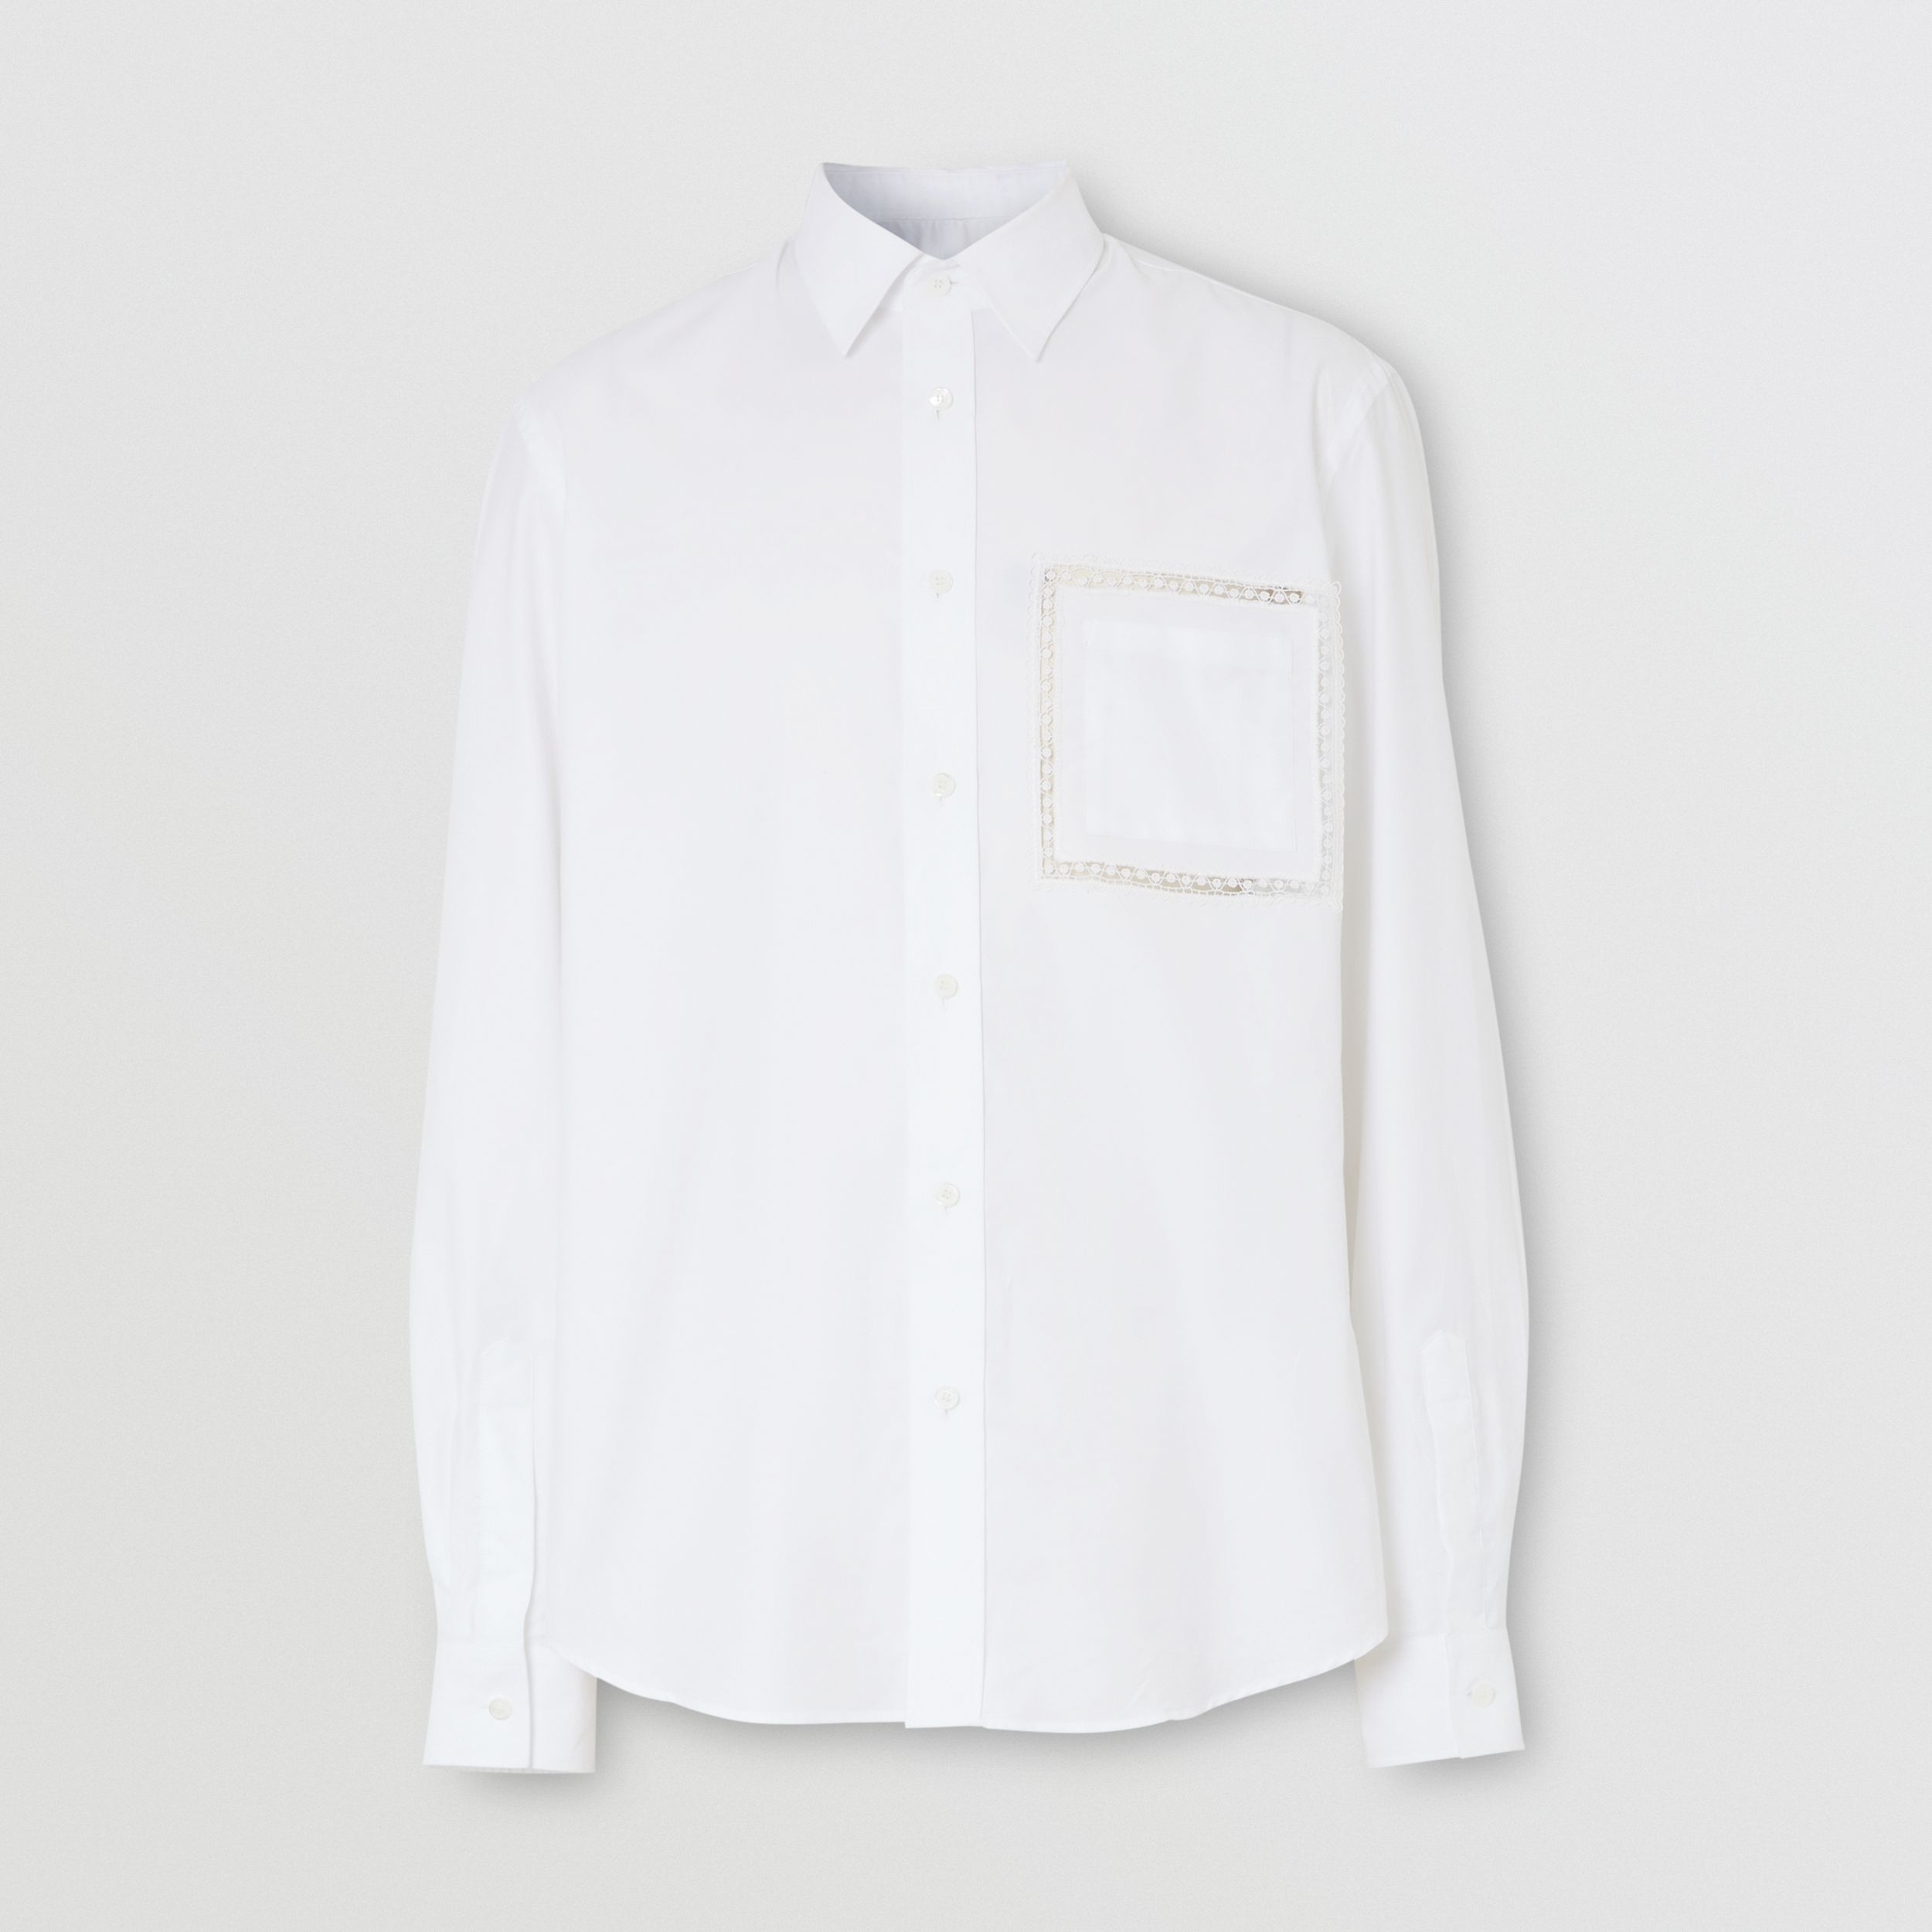 Classic Fit Lace Detail Cotton Poplin Oxford Shirt in Optic White - Men | Burberry - 4